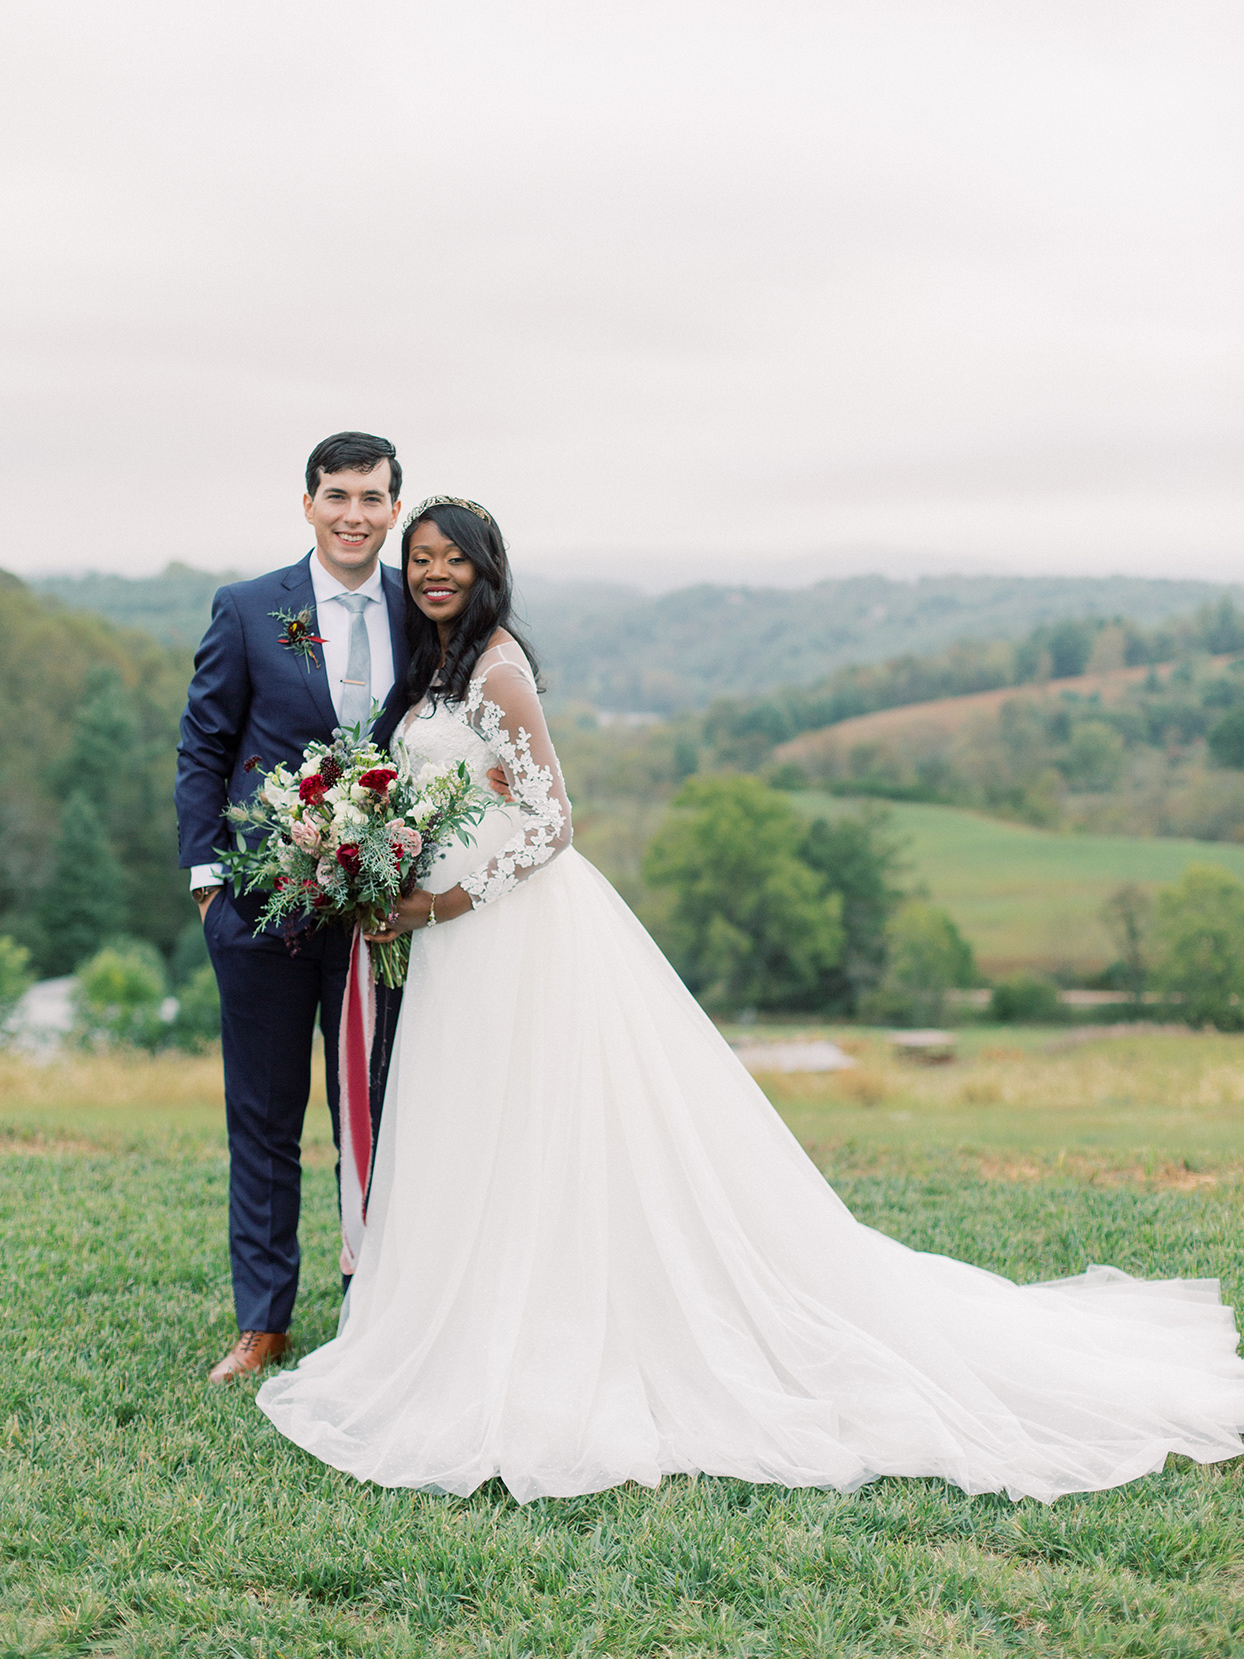 rebecca isaac wedding couple on grassy hill